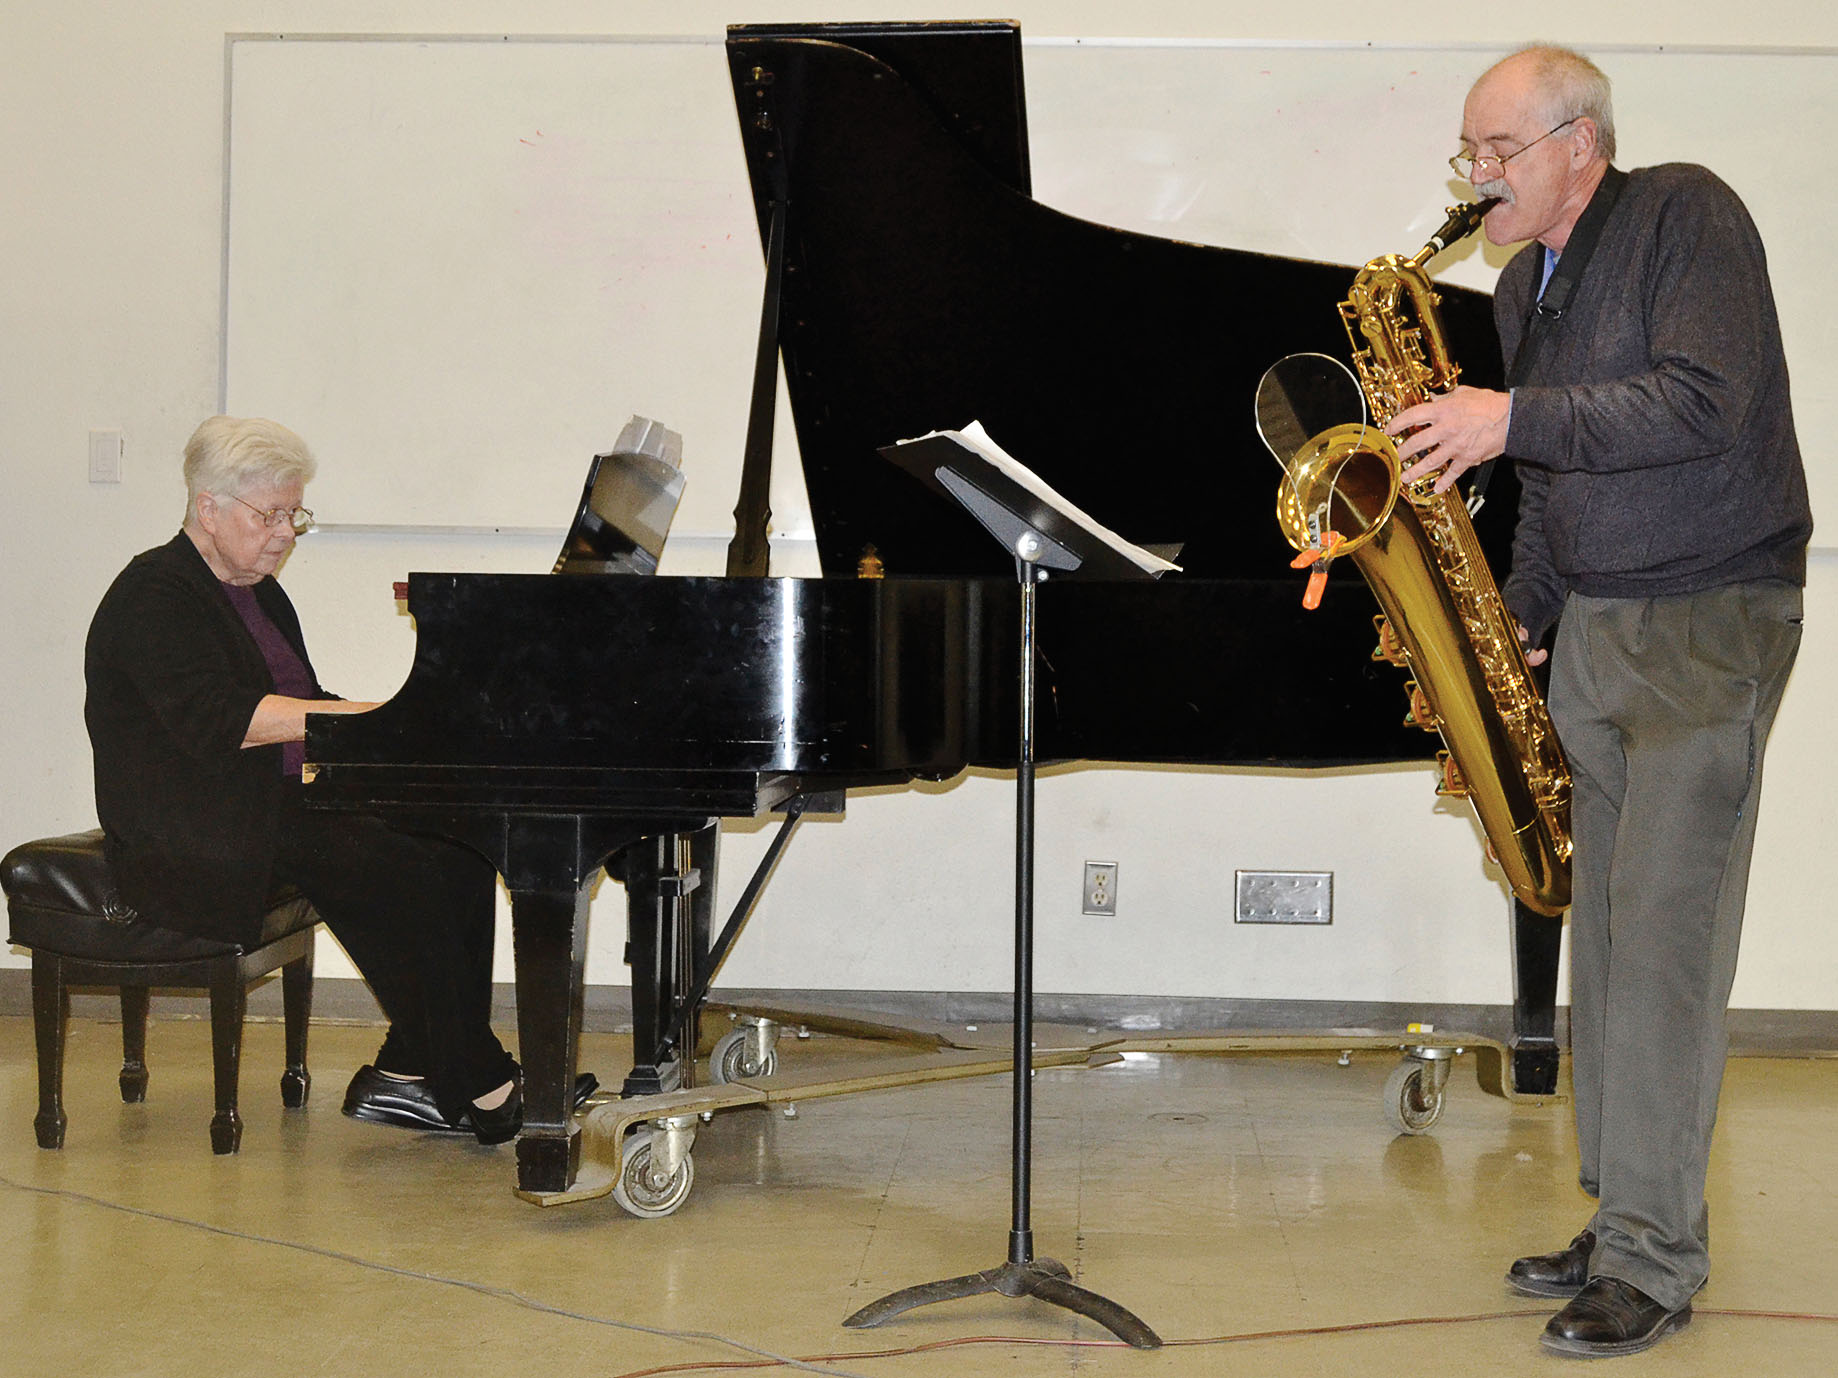 Concert Review: concerts at Pierce incorporate a variety of melodies